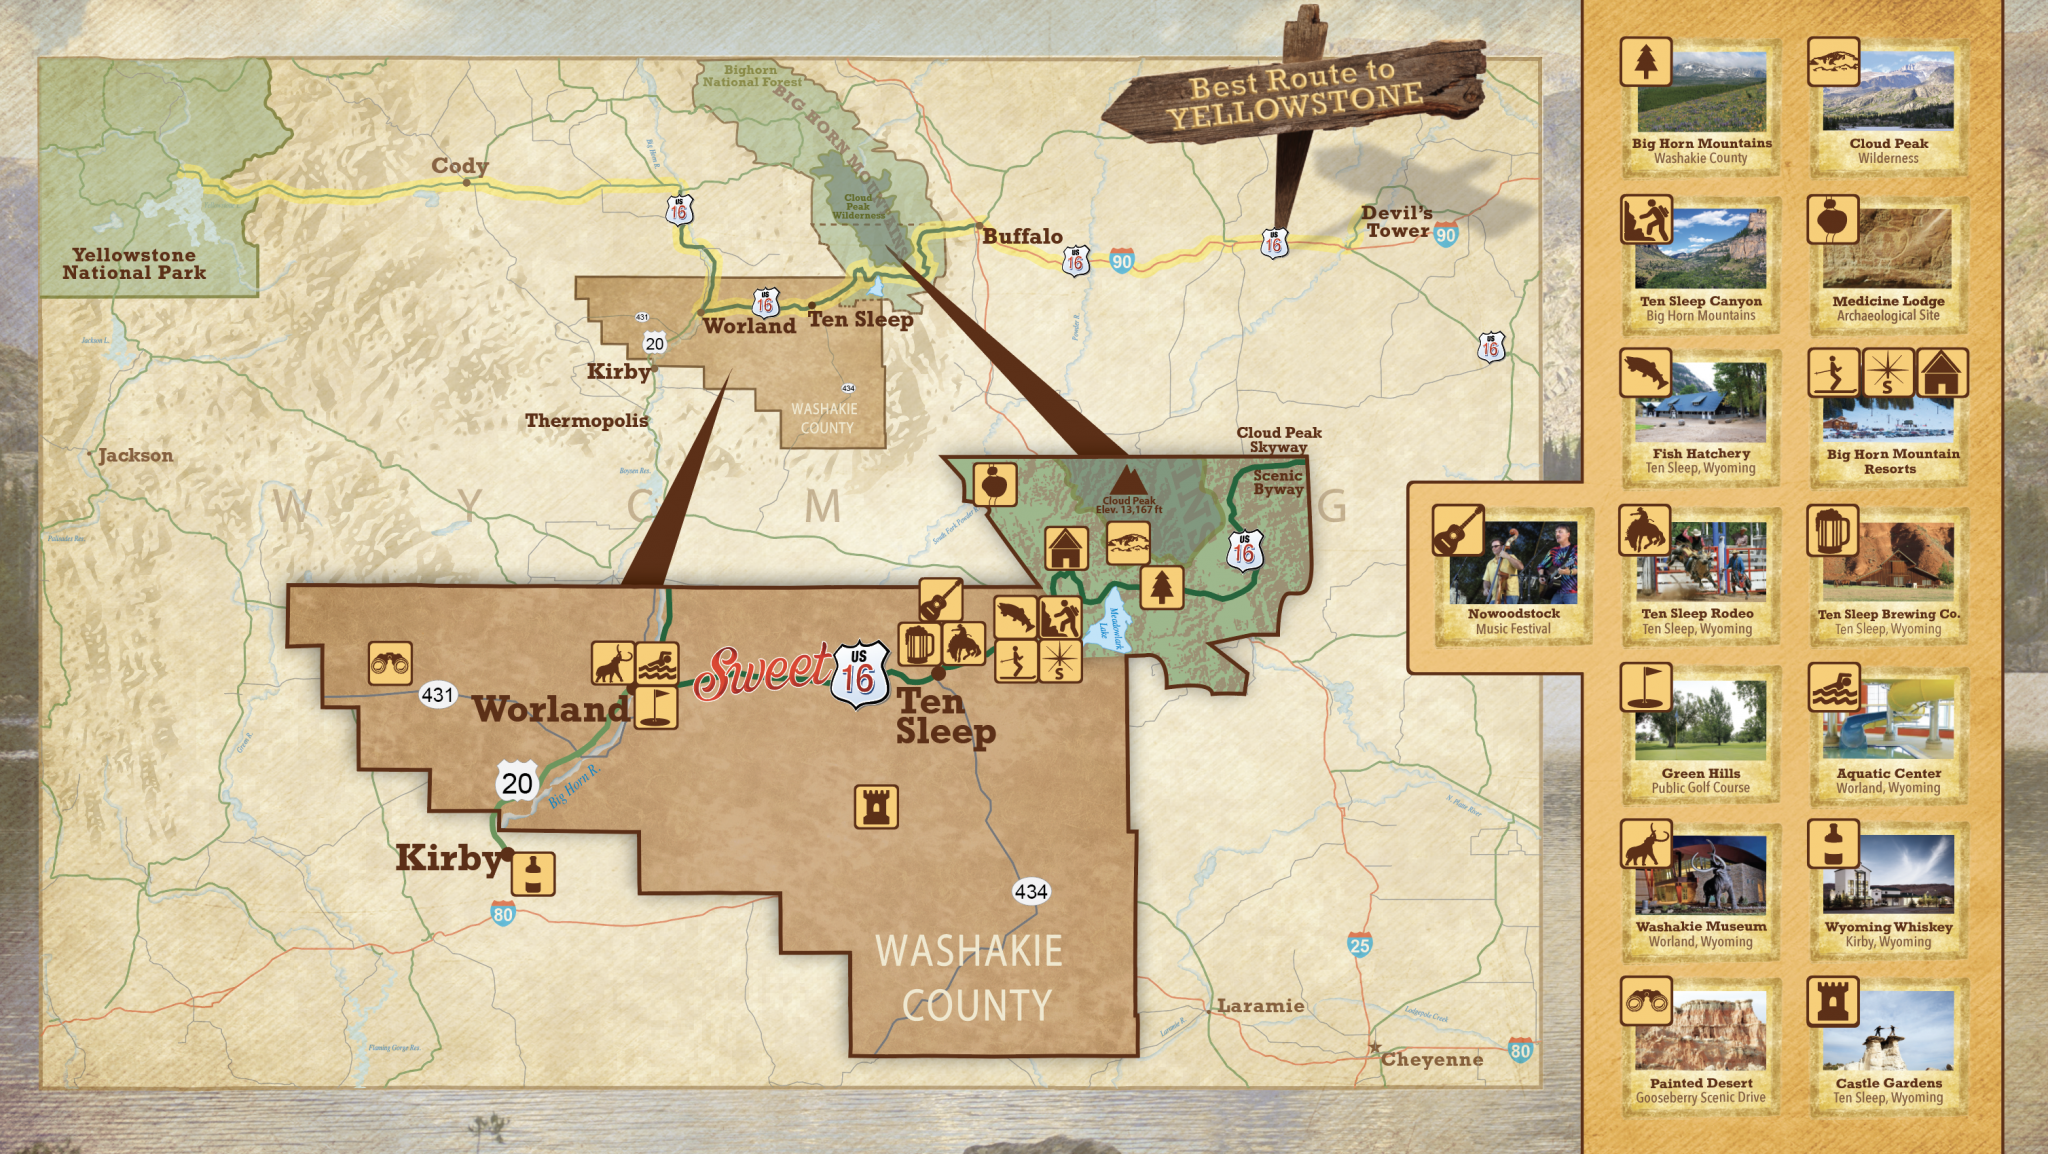 Maps – Bighorn Mountain Country